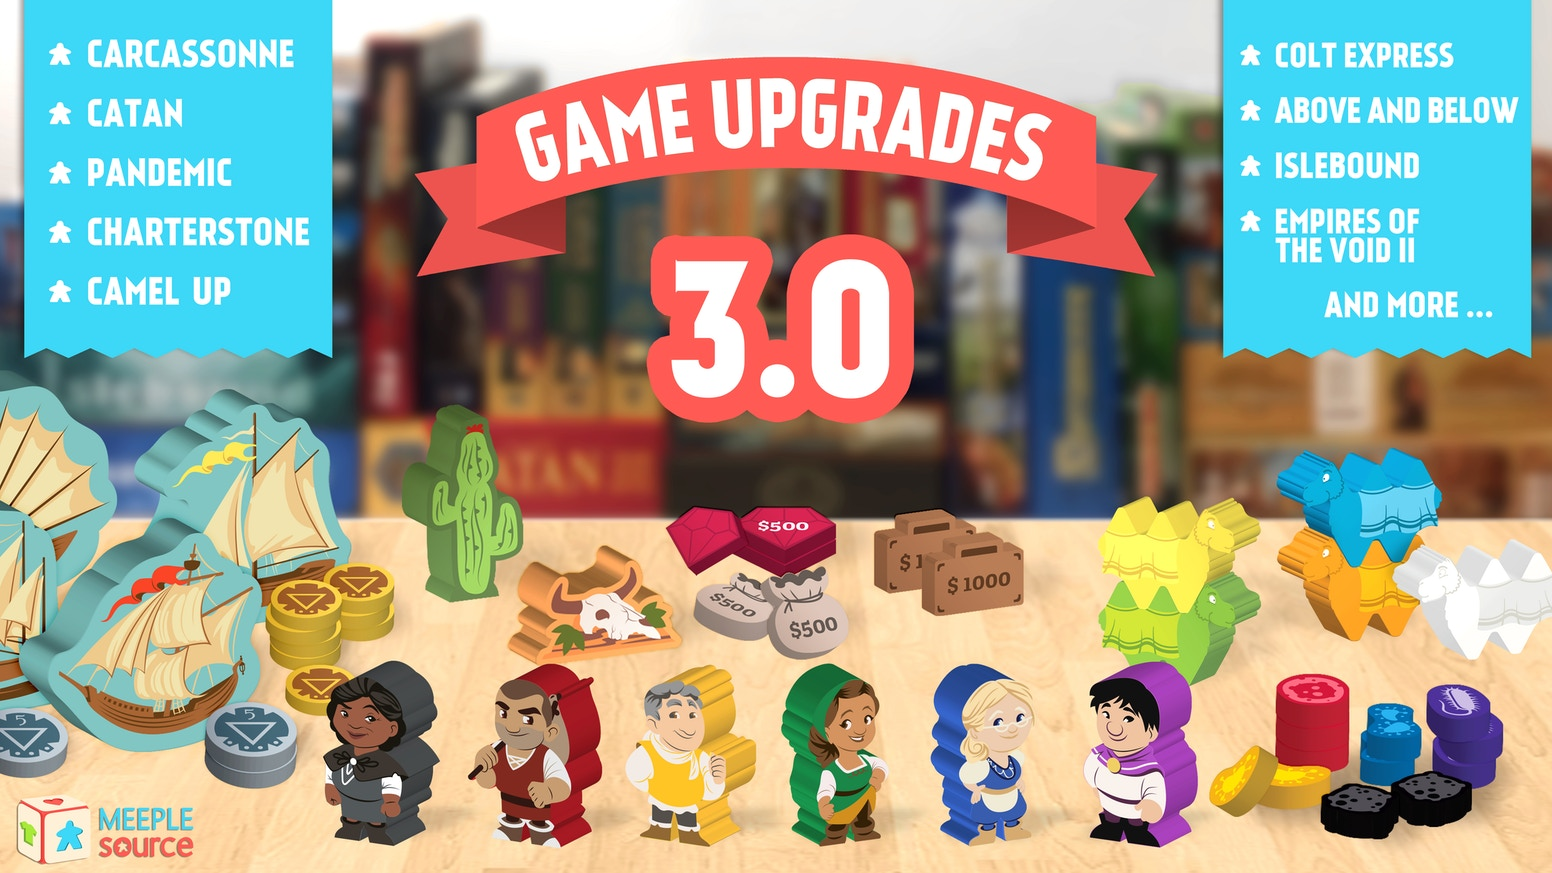 Game upgrade kits for Pandemic, Carcassonne, Catan, Ticket to Ride, Yokohama, Charterstone, Near and Far, Colt Express, and many more!